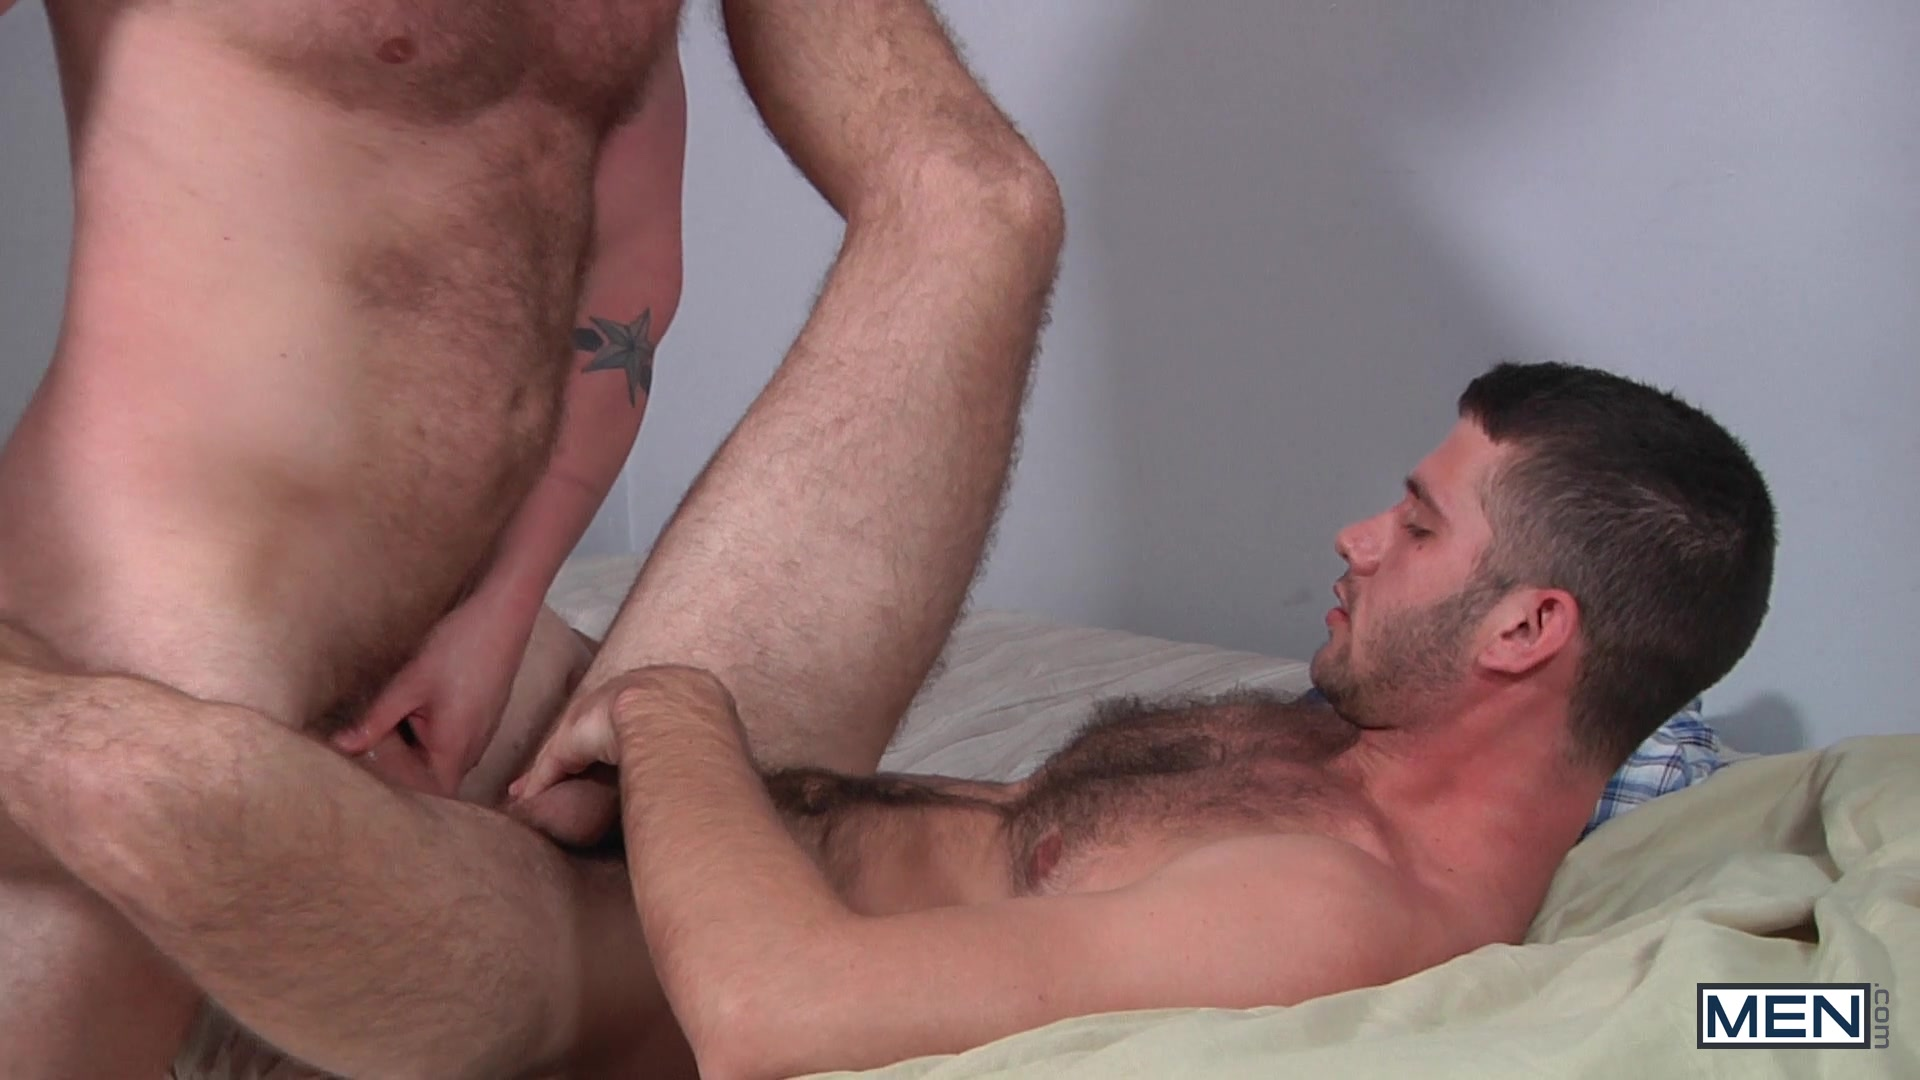 Watch Sex A La Carte – Dmh – Drill My Hole – Jimmy Fanz And Aaron Bruiser (MEN.COM) Gay Porn Tube Videos Gifs And Free XXX HD Sex Movies Photos Online